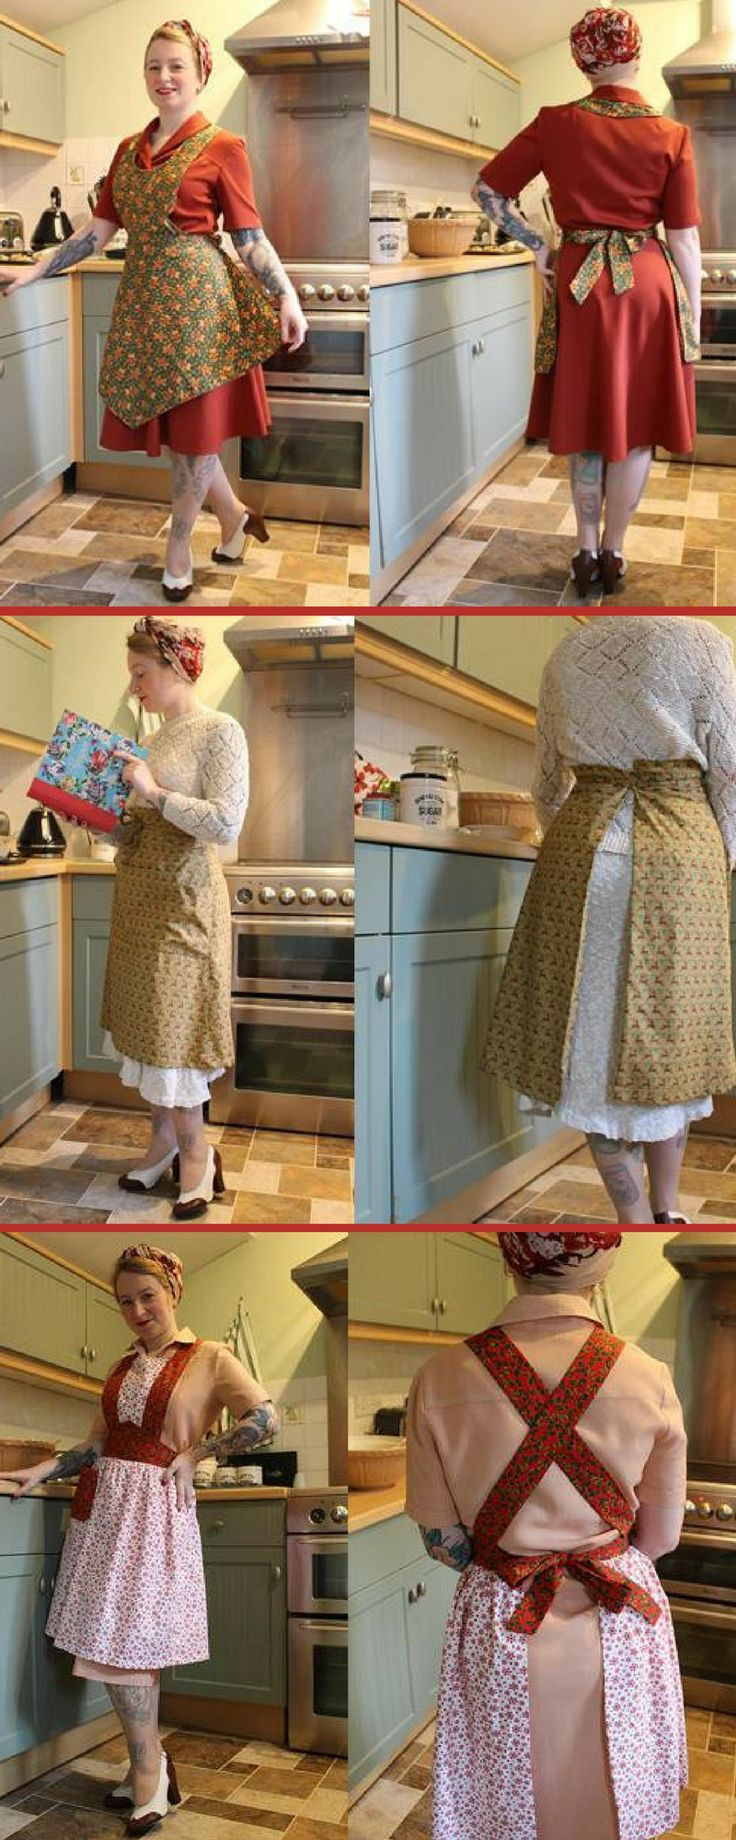 1940s reproduction Christmas aprons. THey're gorgeous. And so are her shoes. Want an apron in every colour! #1940sapron #reinactment1940s #christmasapron #ad #retrostyle #pinnieparade